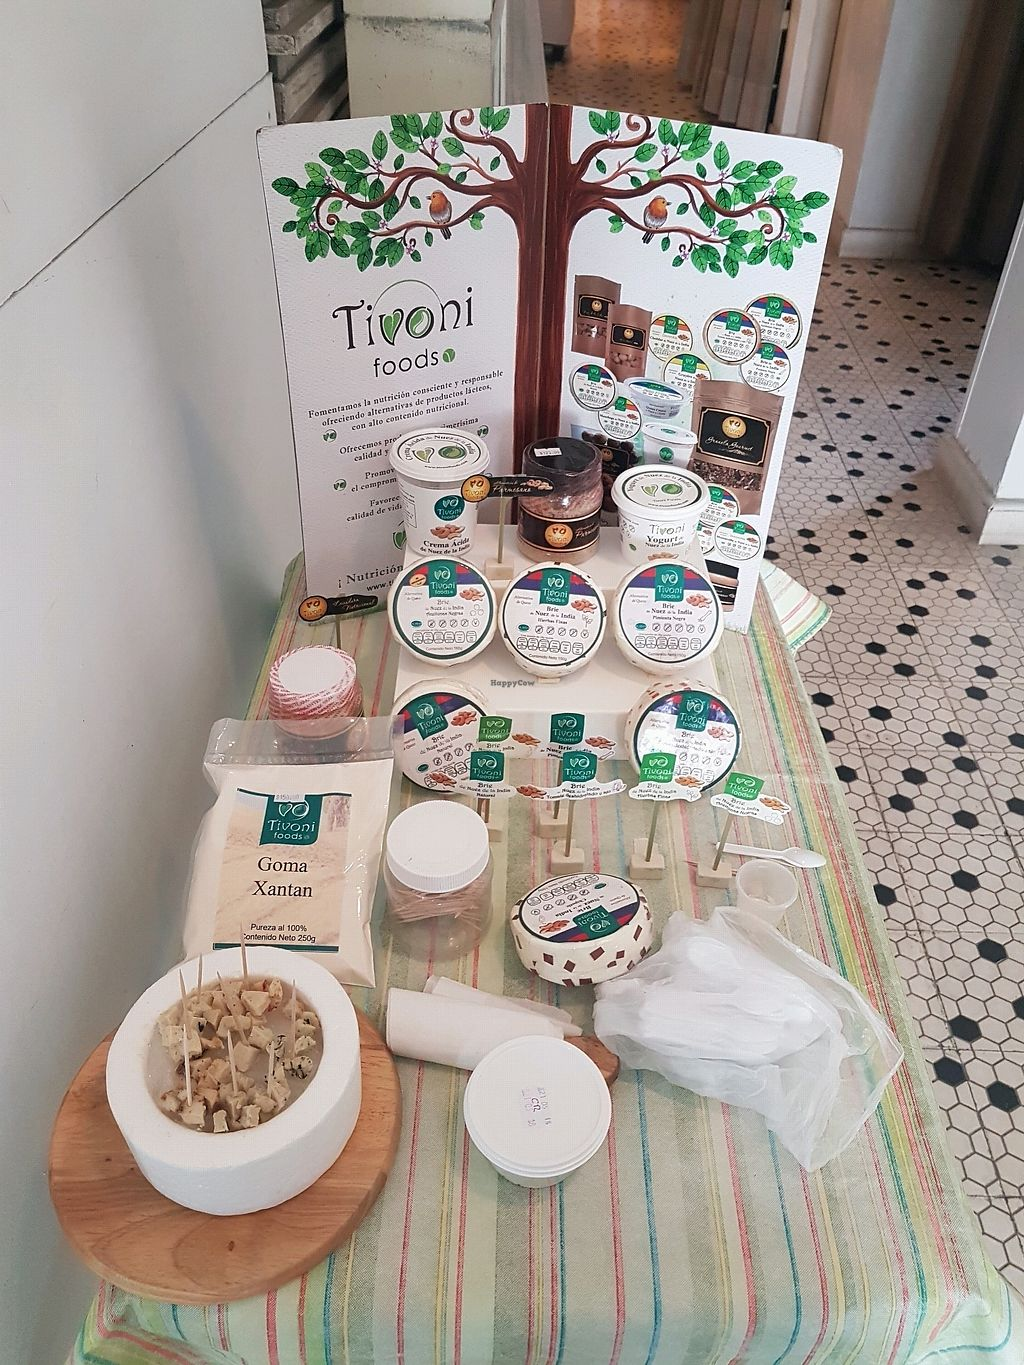 "Photo of Tivoni Foods  by <a href=""/members/profile/Mellow2bee"">Mellow2bee</a> <br/>Tivoni pop-up tasting <br/> March 23, 2018  - <a href='/contact/abuse/image/71910/375007'>Report</a>"